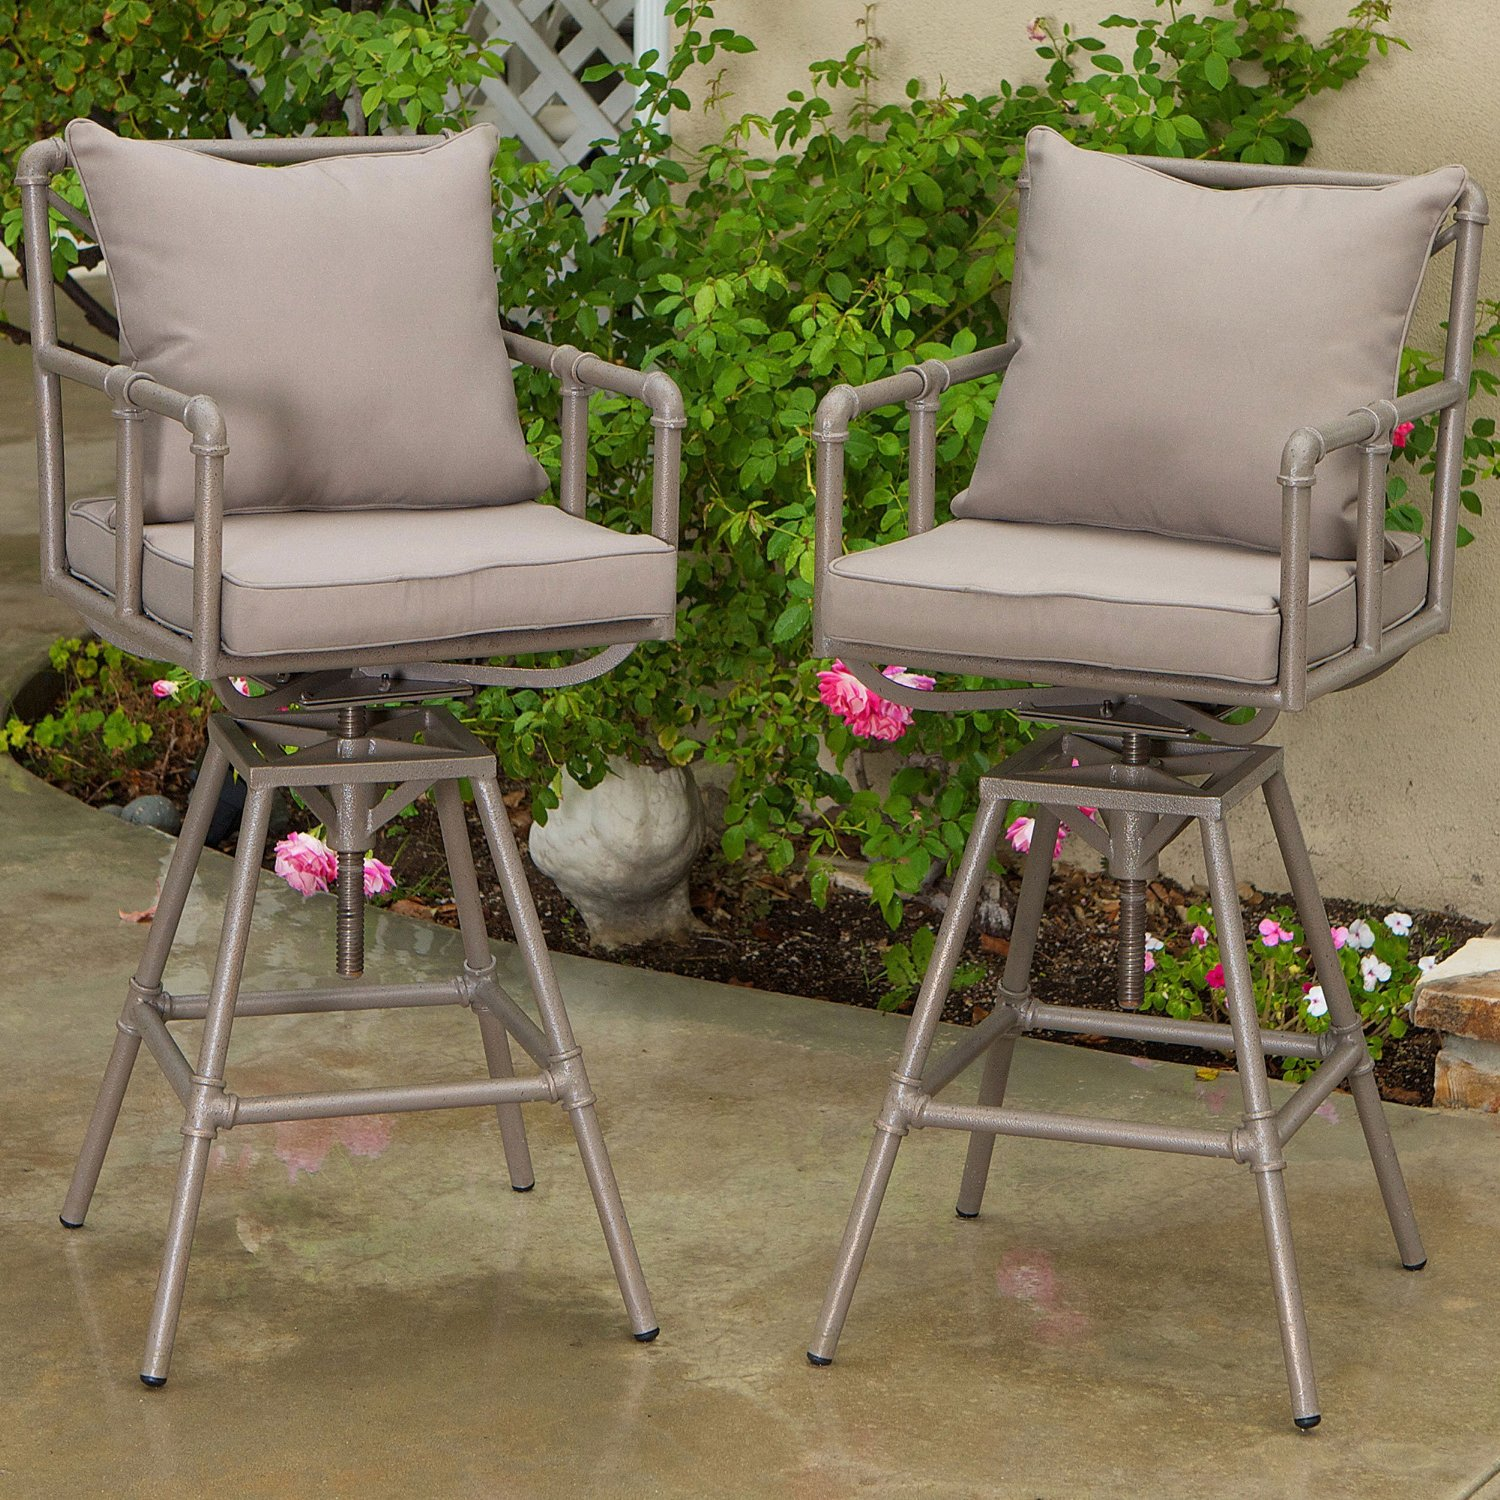 Tallahassee Pipe Outdoor Adjustable Bar Stools By Great Deal Furniture ·  Tallahassee_pipe_outdoor_bar_stools